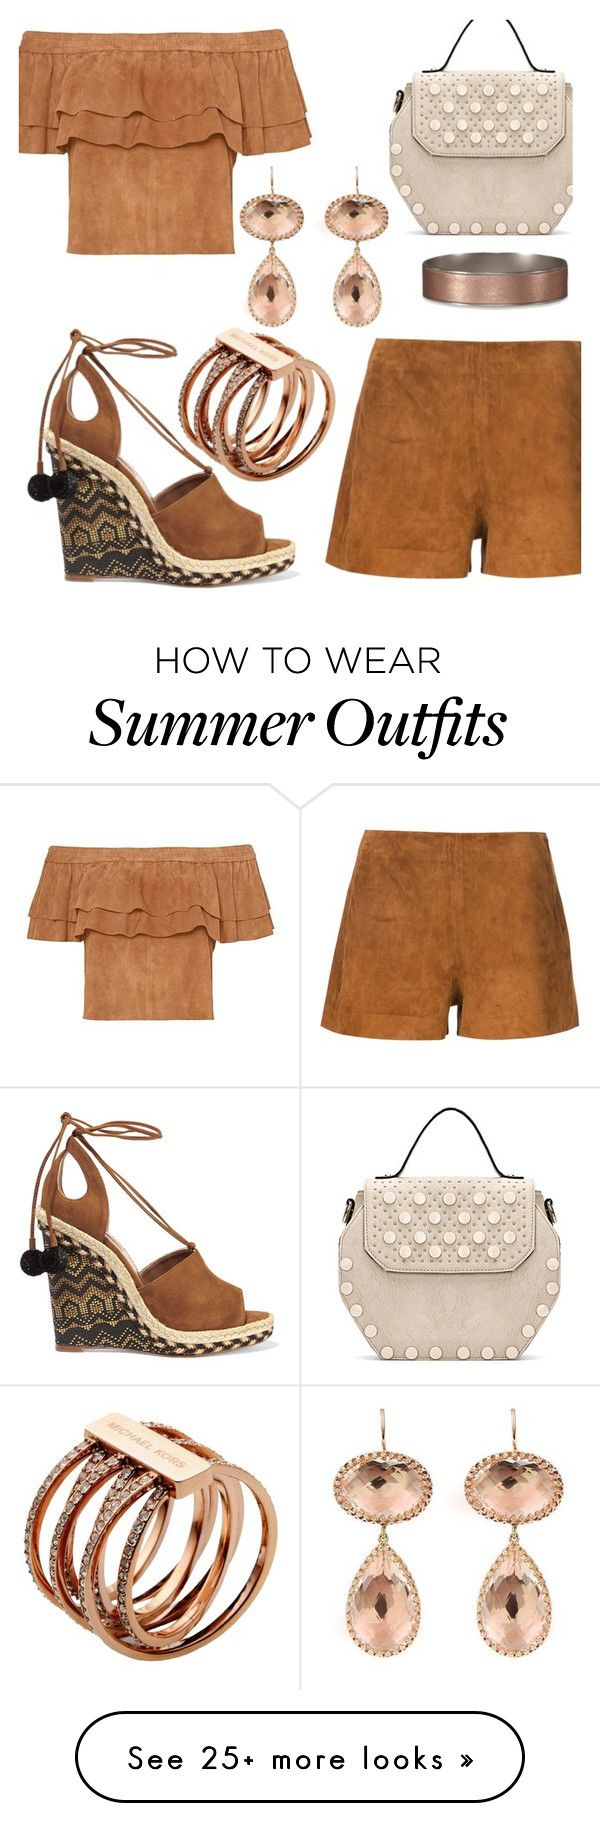 """Suede Outfit Summer To Fall"" by deborah-calton on Polyvore featuring rag & bone, Abercrombie & Fitch, Aquazzura, Larkspur & Hawk and Michael Kors"